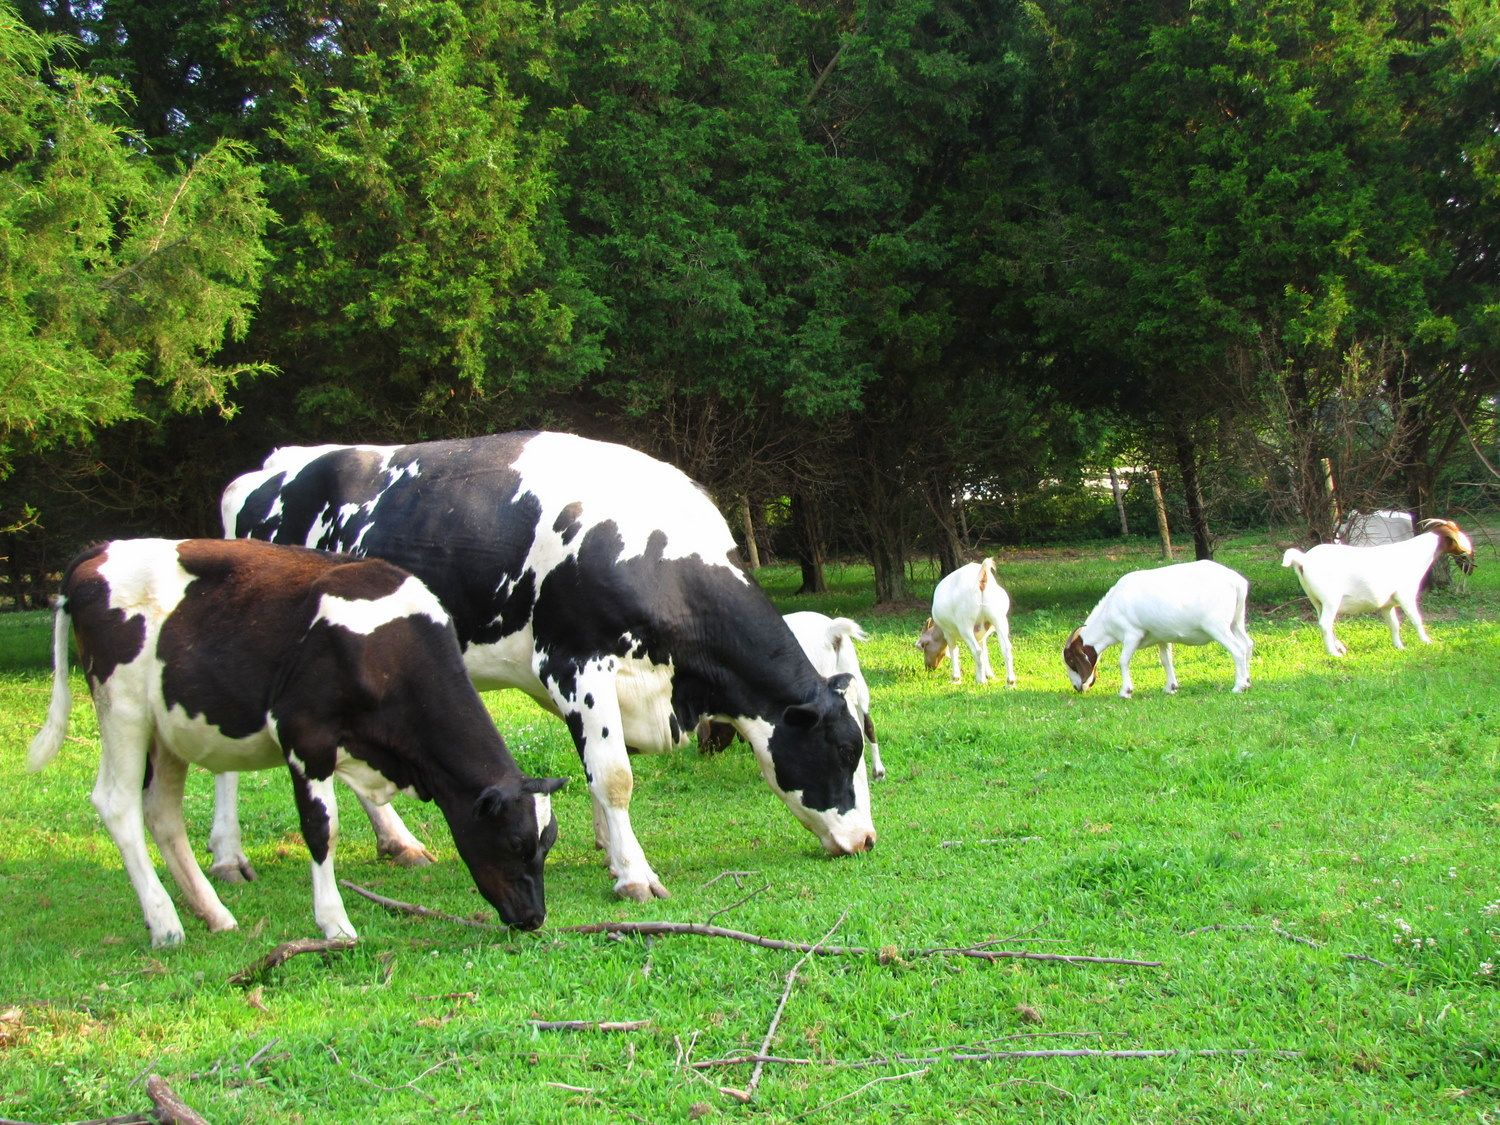 A Fantastic Refuge In Blairstown Nj For Animals Rescued From The Food Farming Industry Animals Animal Rescue Farm Animals